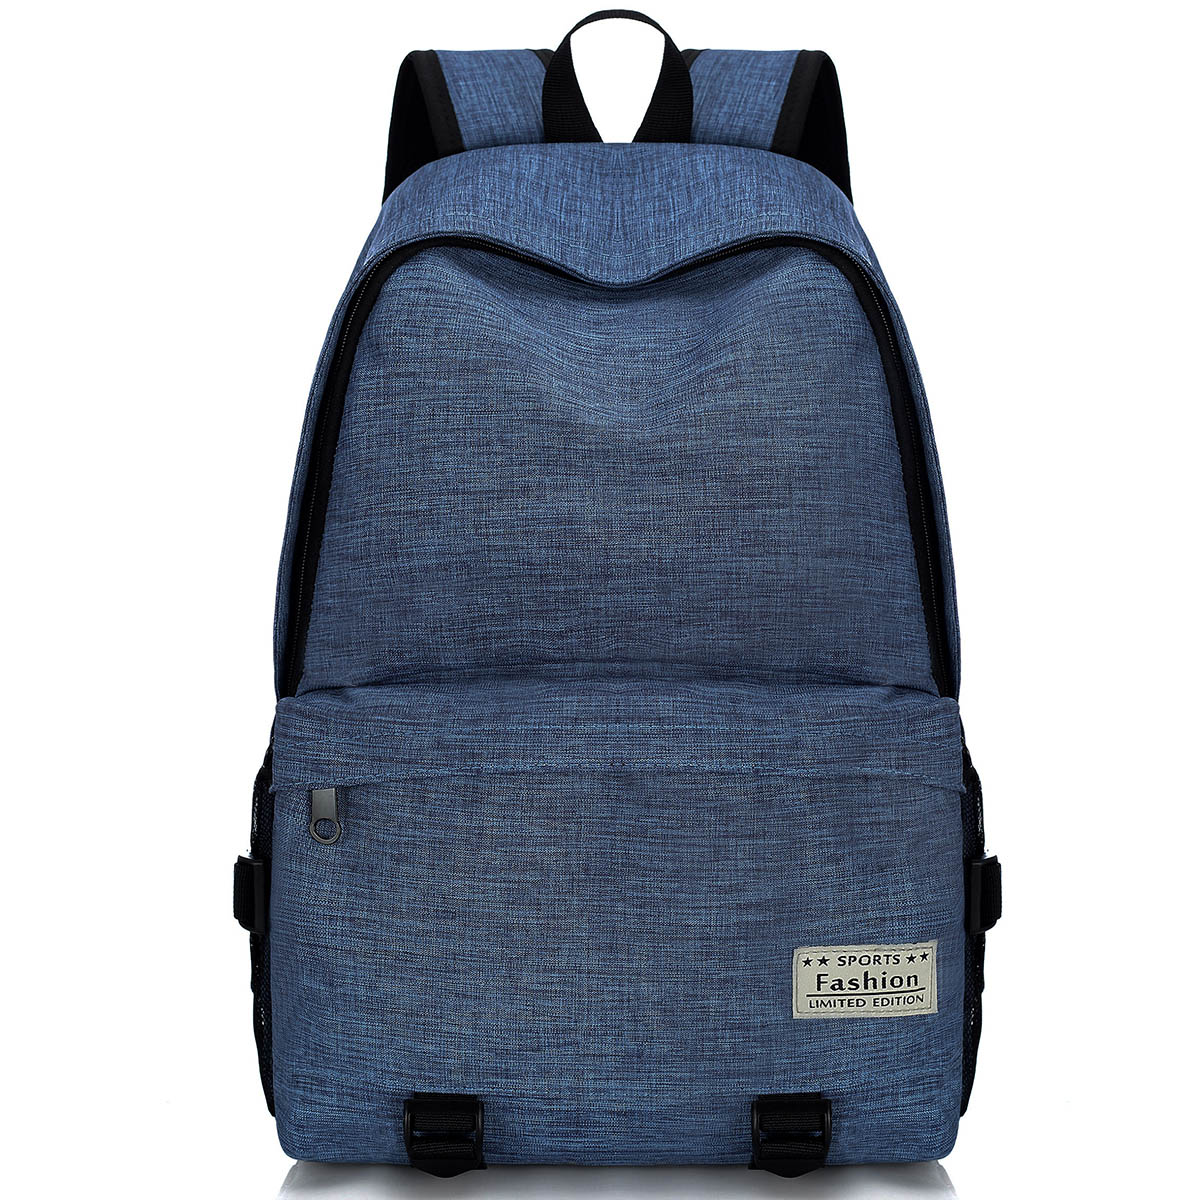 fa4dc6c3c145 Brand Cool Japan Preppy Style Canvas Backpack Fashion Cute School Backpacks  For Girls Women Laptop Backpacks Schoolbags For Boy-in Backpacks from  Luggage ...